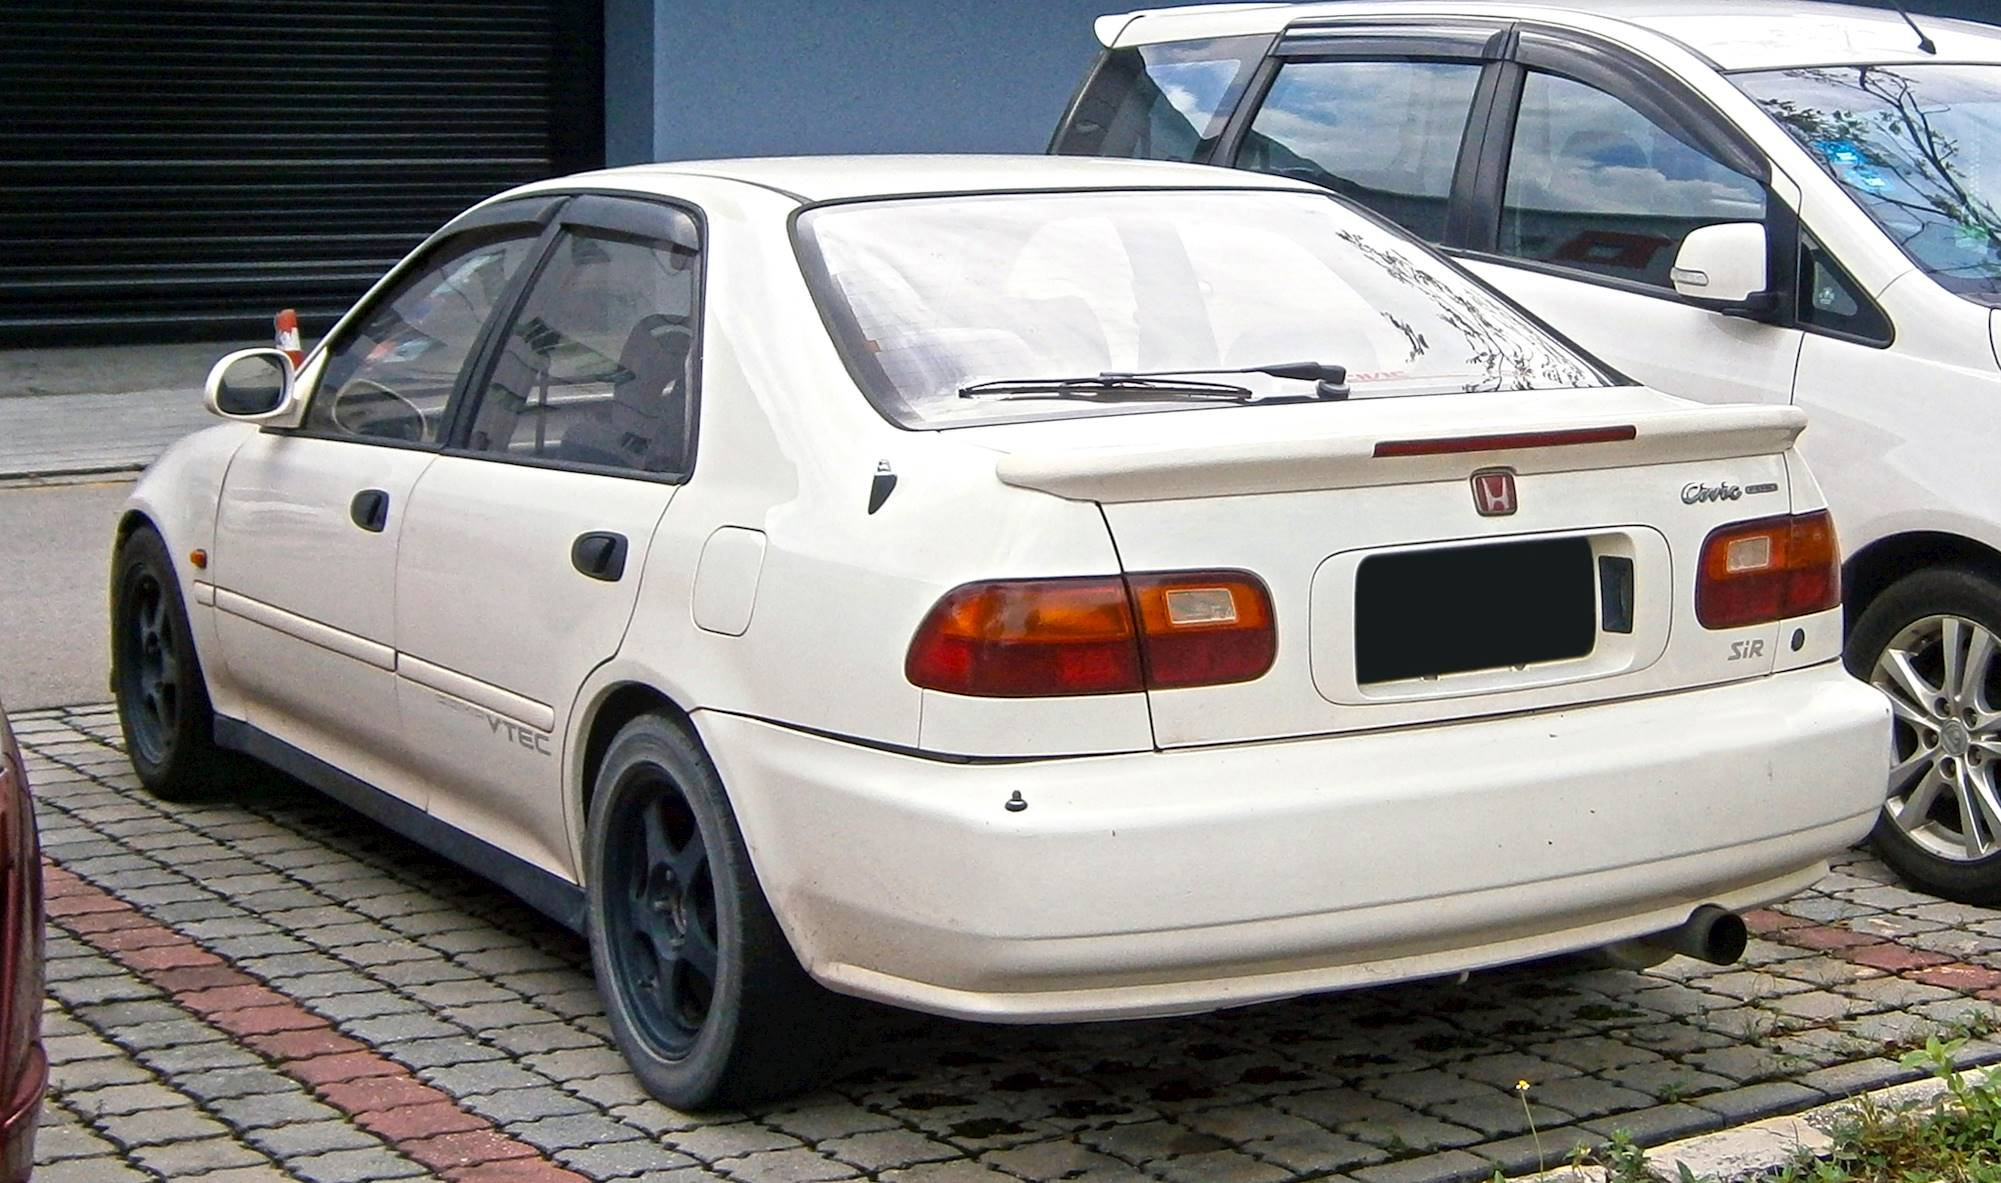 1992 Honda Civic Vx 2dr Hatchback 15l Manual Ferio